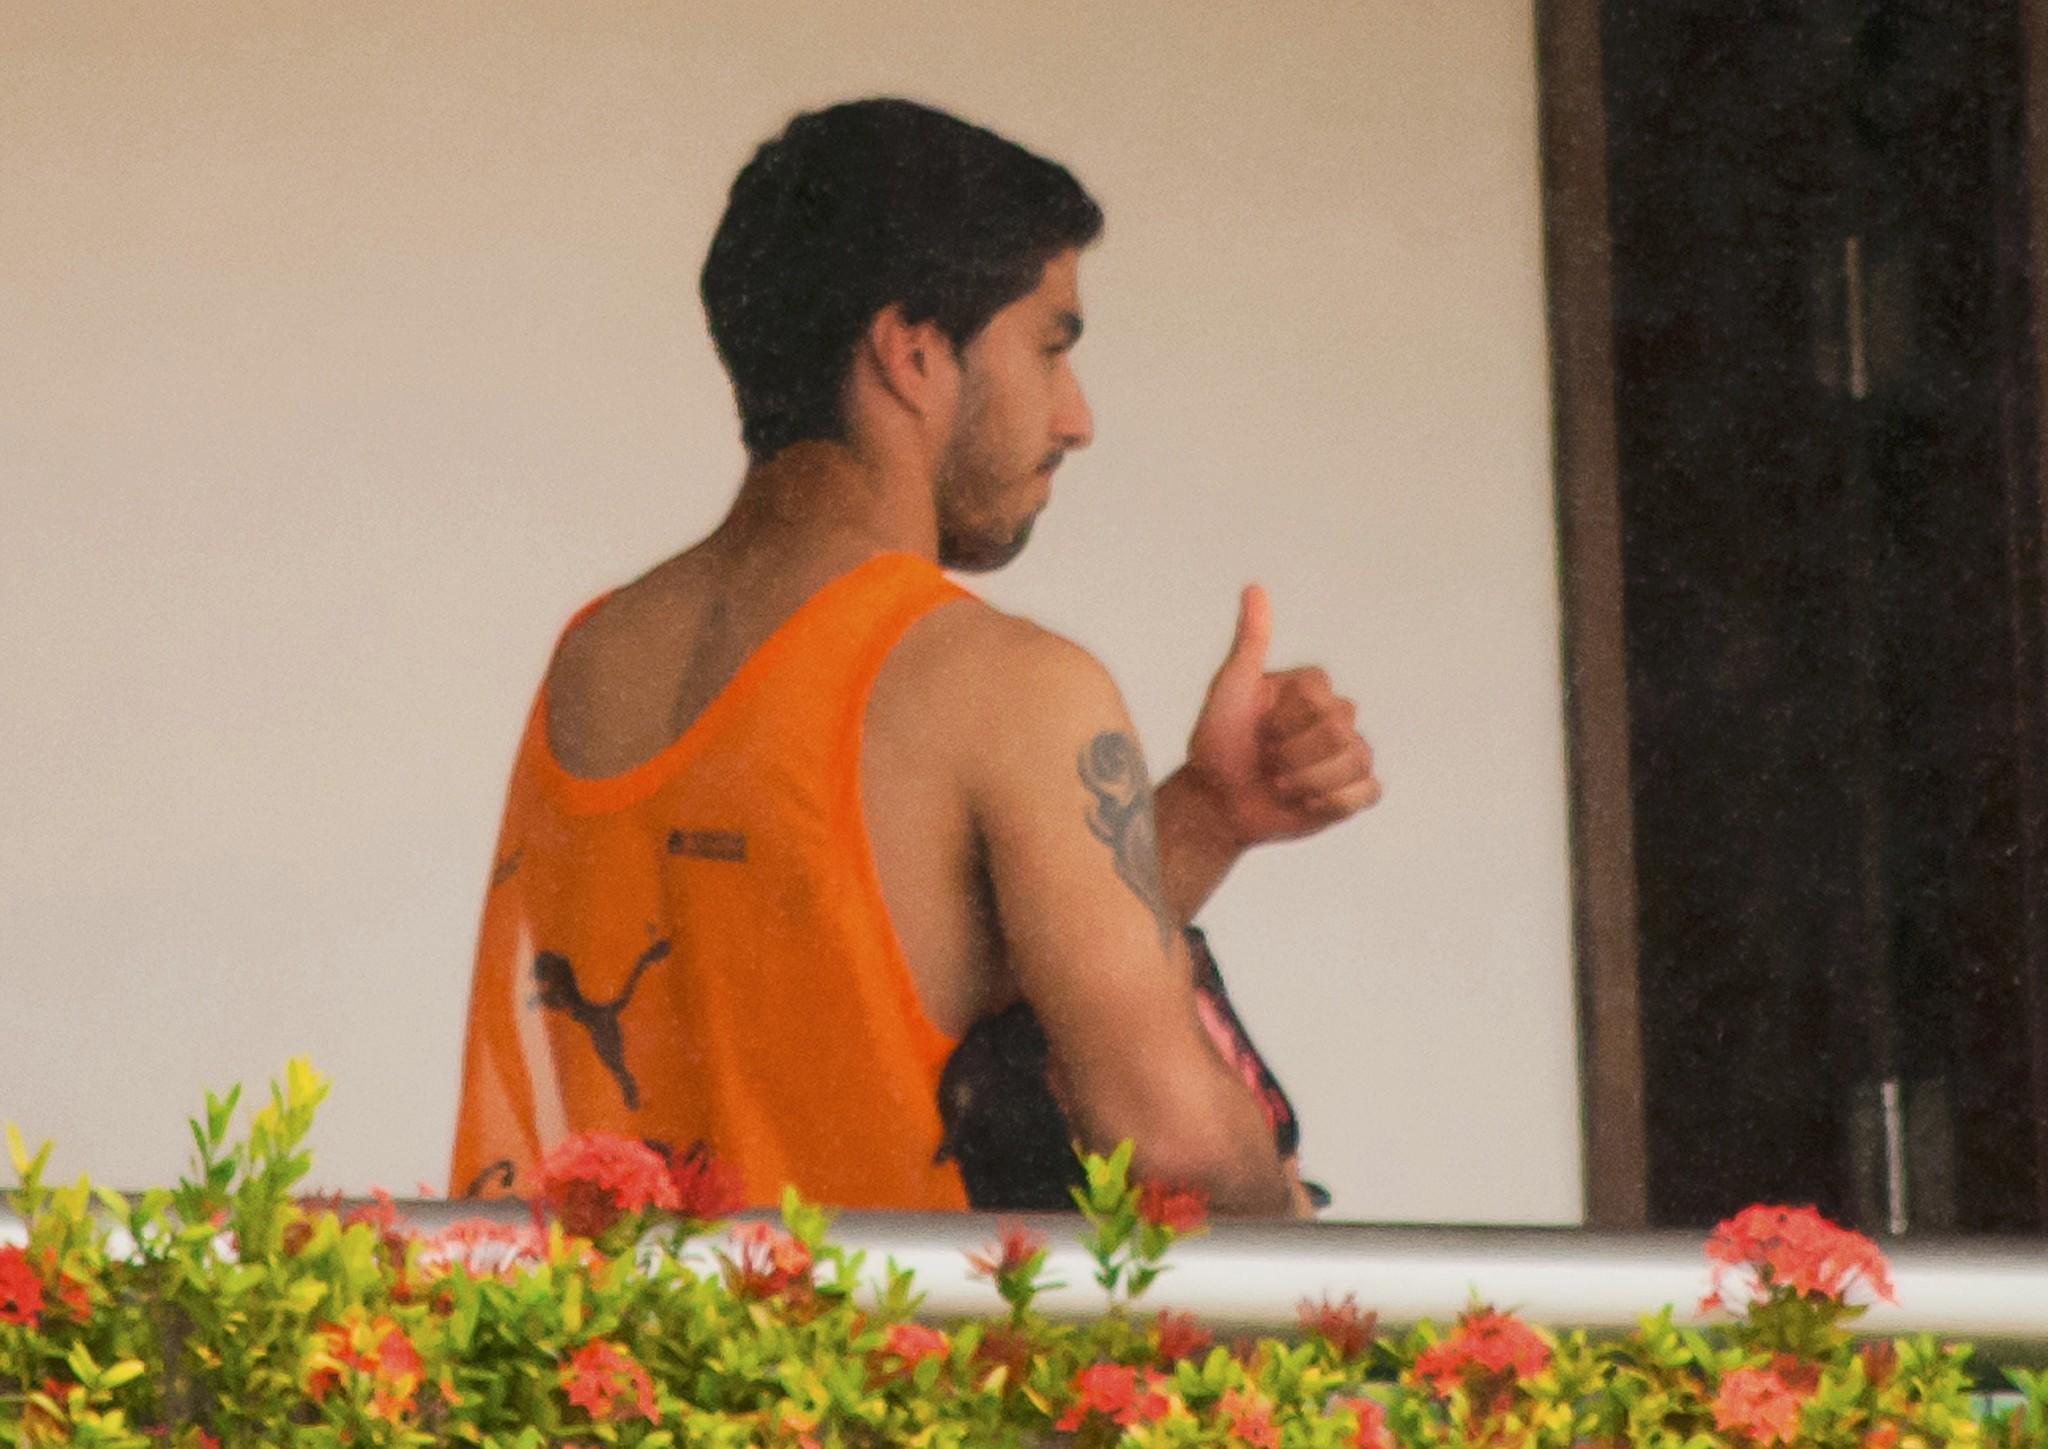 Uruguay's Luis Suarez gives a thumbs-up from a balcony of the team's hotel in Natal, Brazil, on Thursday.